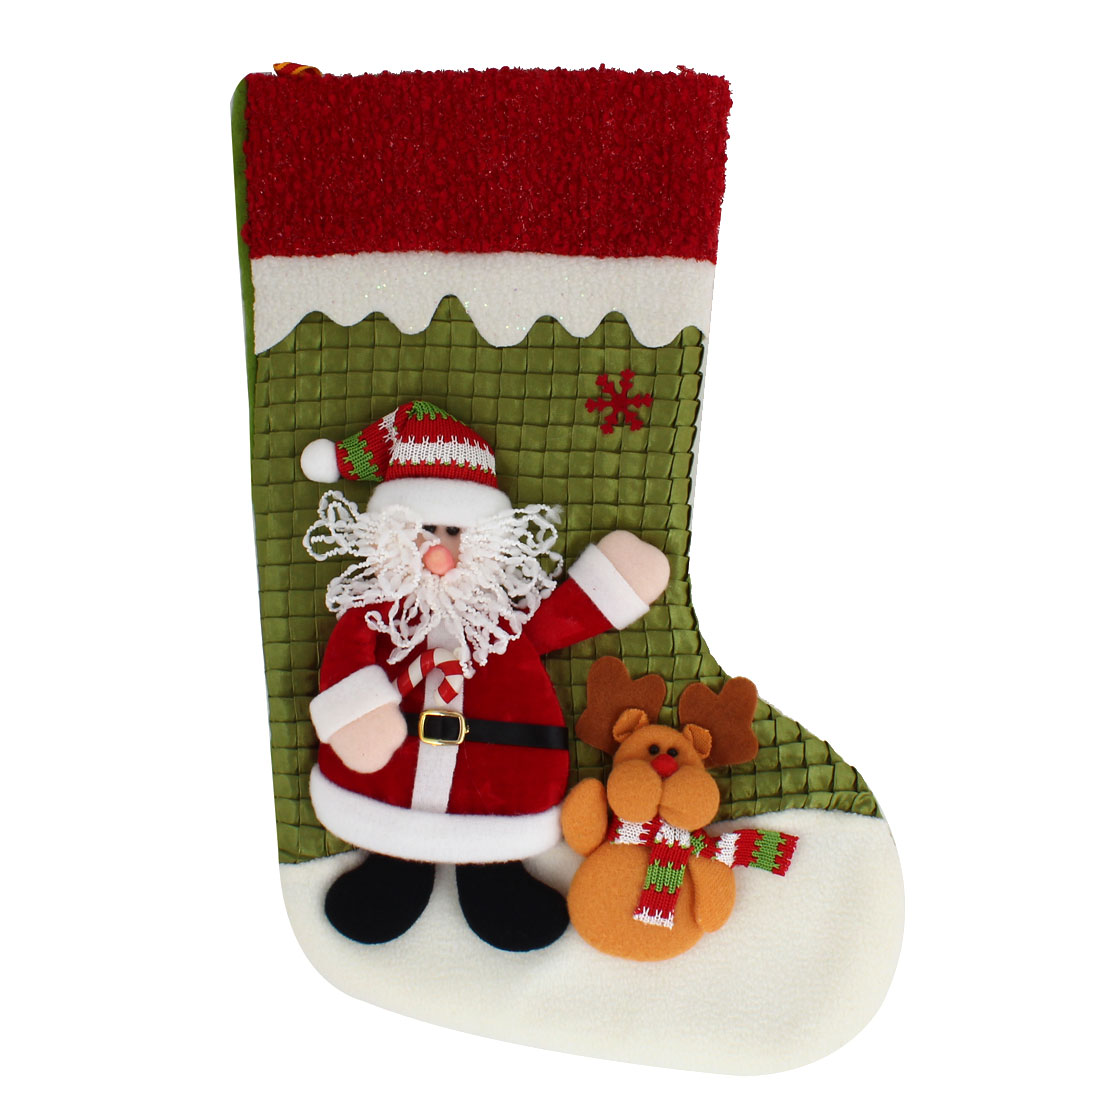 27cm x 43cm Xmas Santa Claus Reindeer Detail Felt Christmas Stocking Gift Holder Red Green White